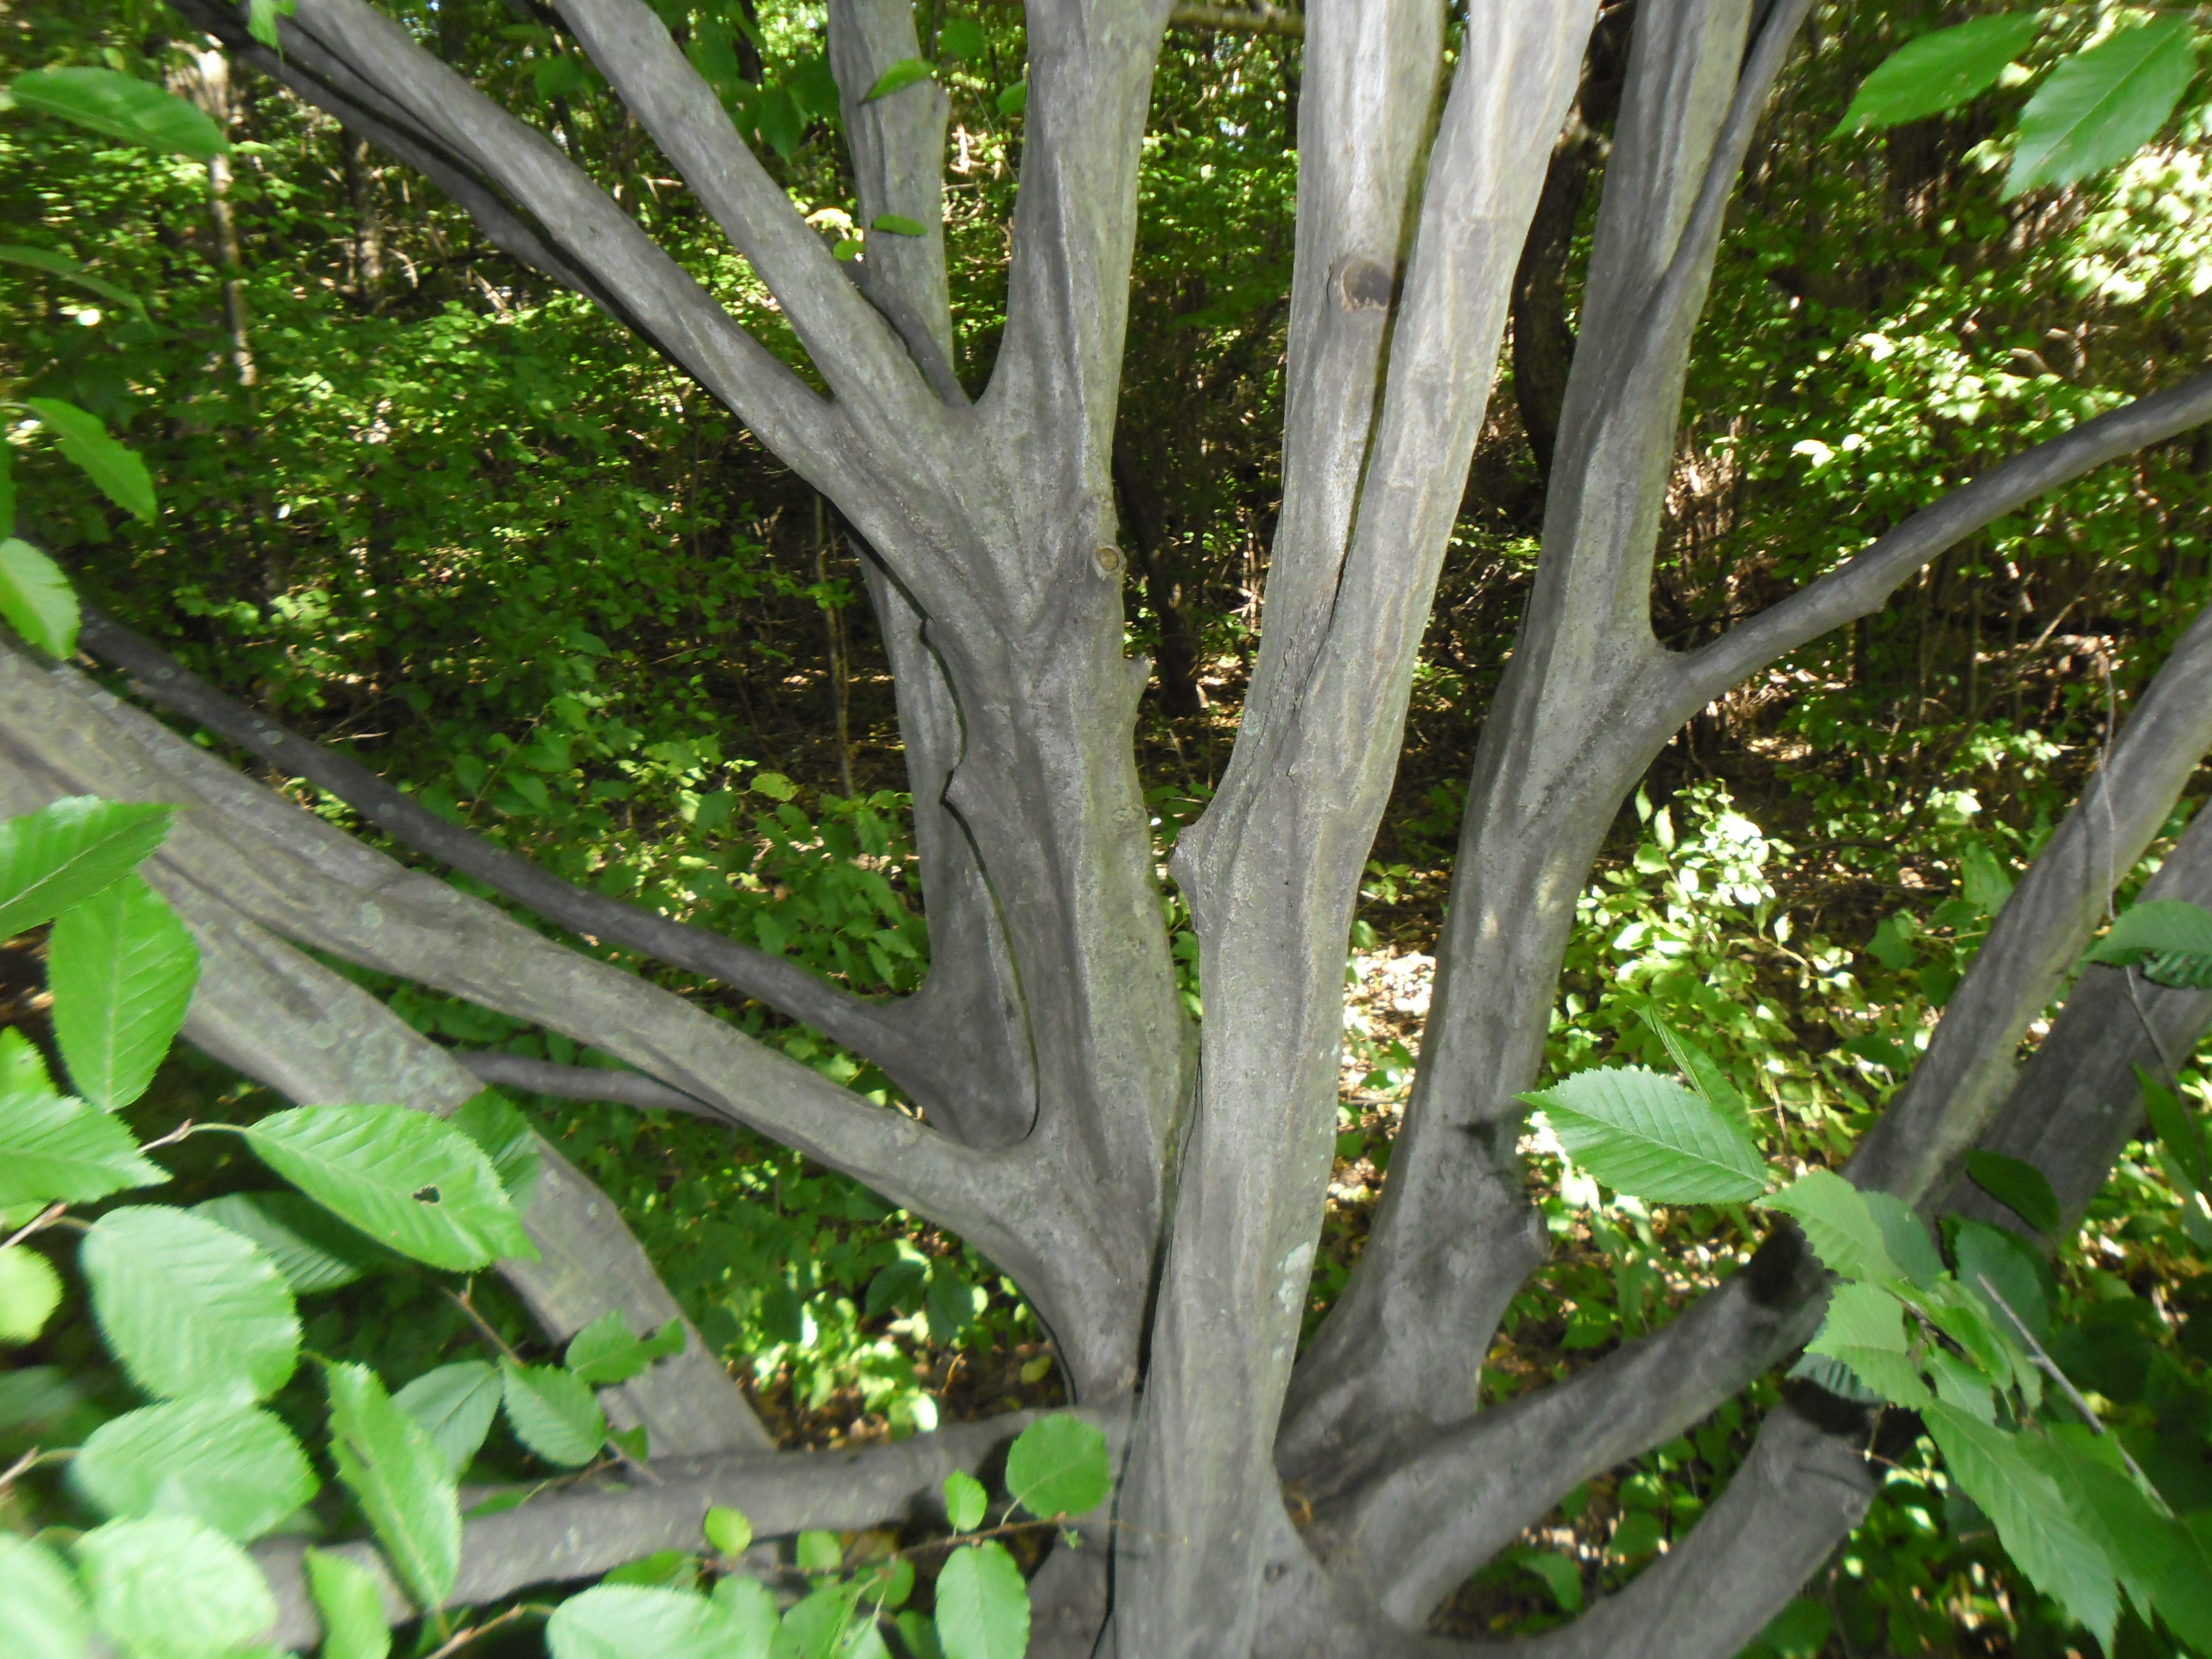 American hornbeam is called musclewood because its main stems undulate and bulge like muscles.